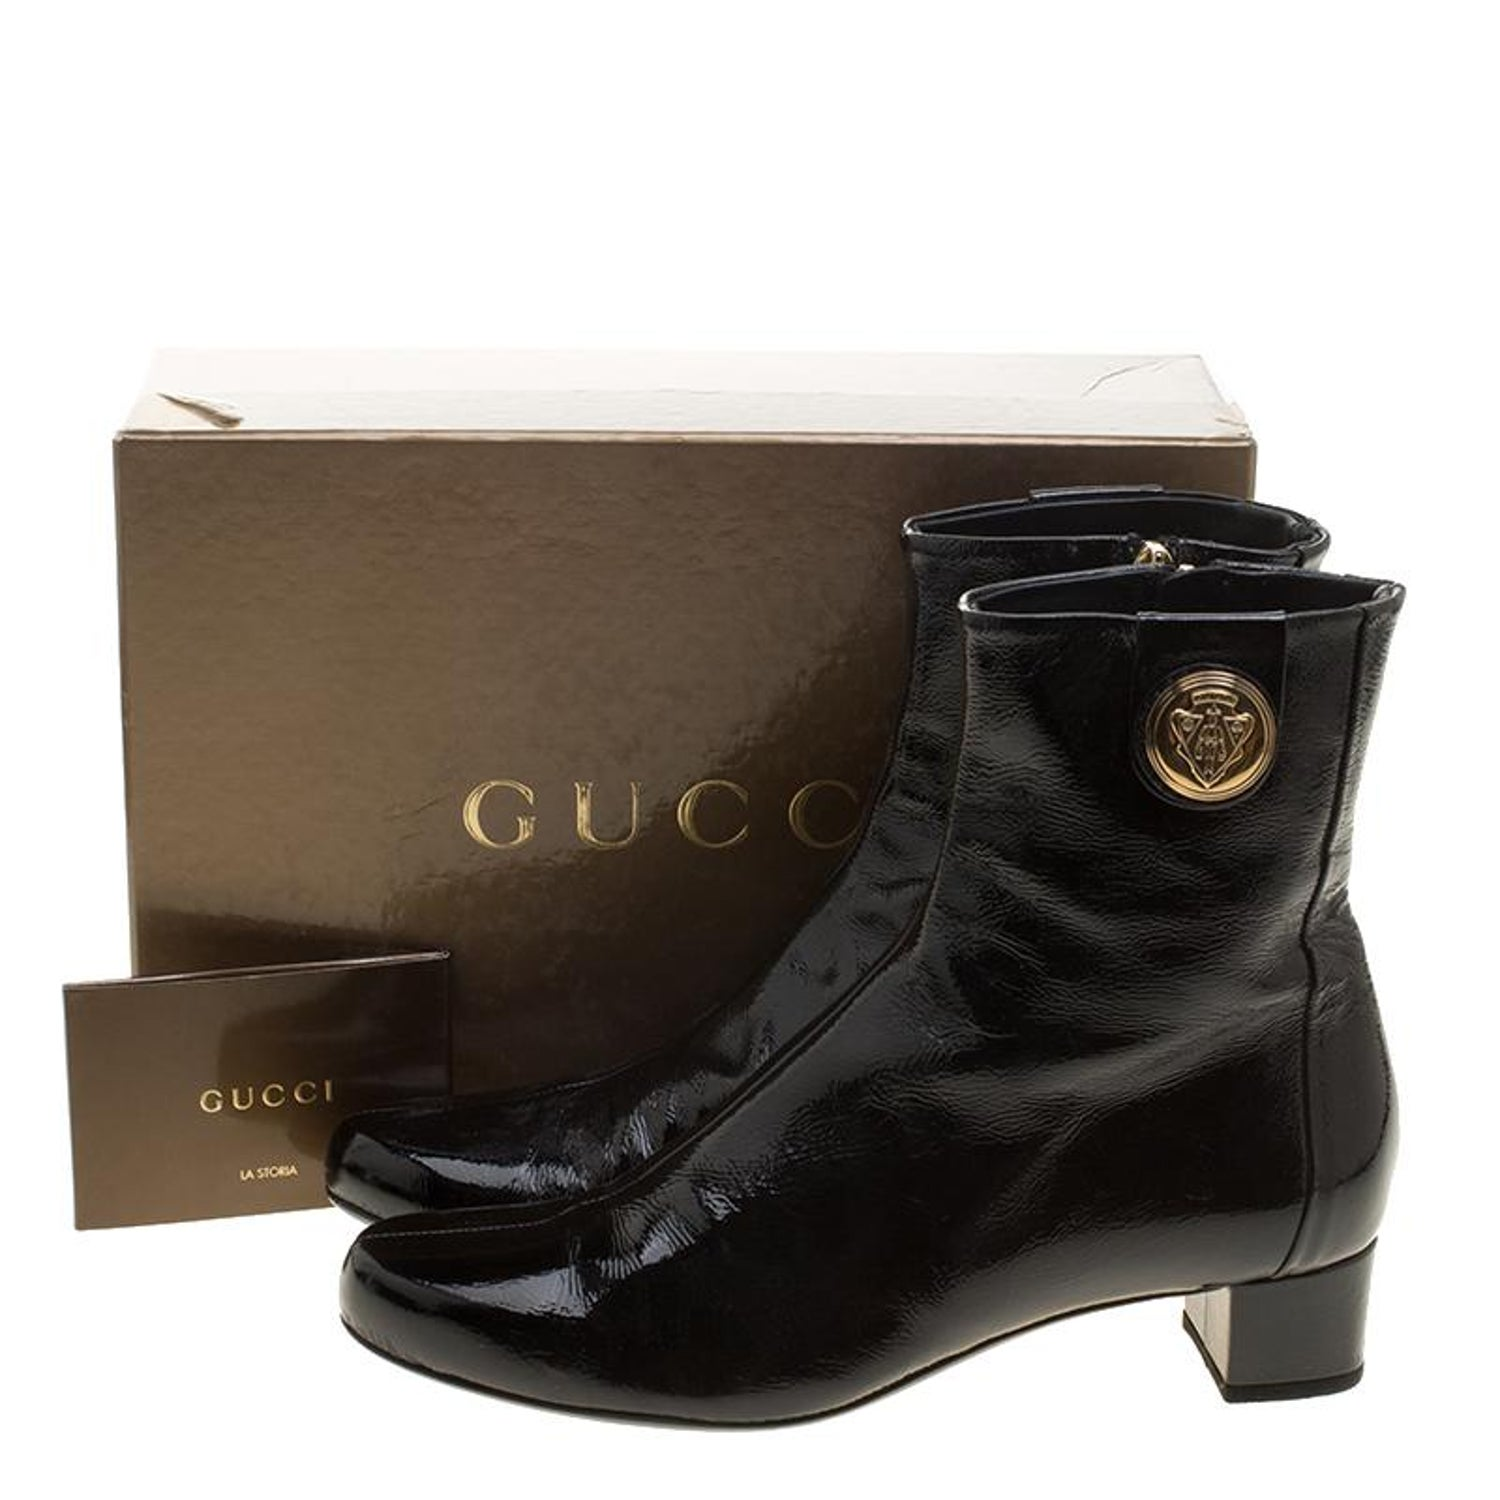 61617a397 Gucci Black Patent Leather Hysteria Ankle Boots Size 38 For Sale at 1stdibs